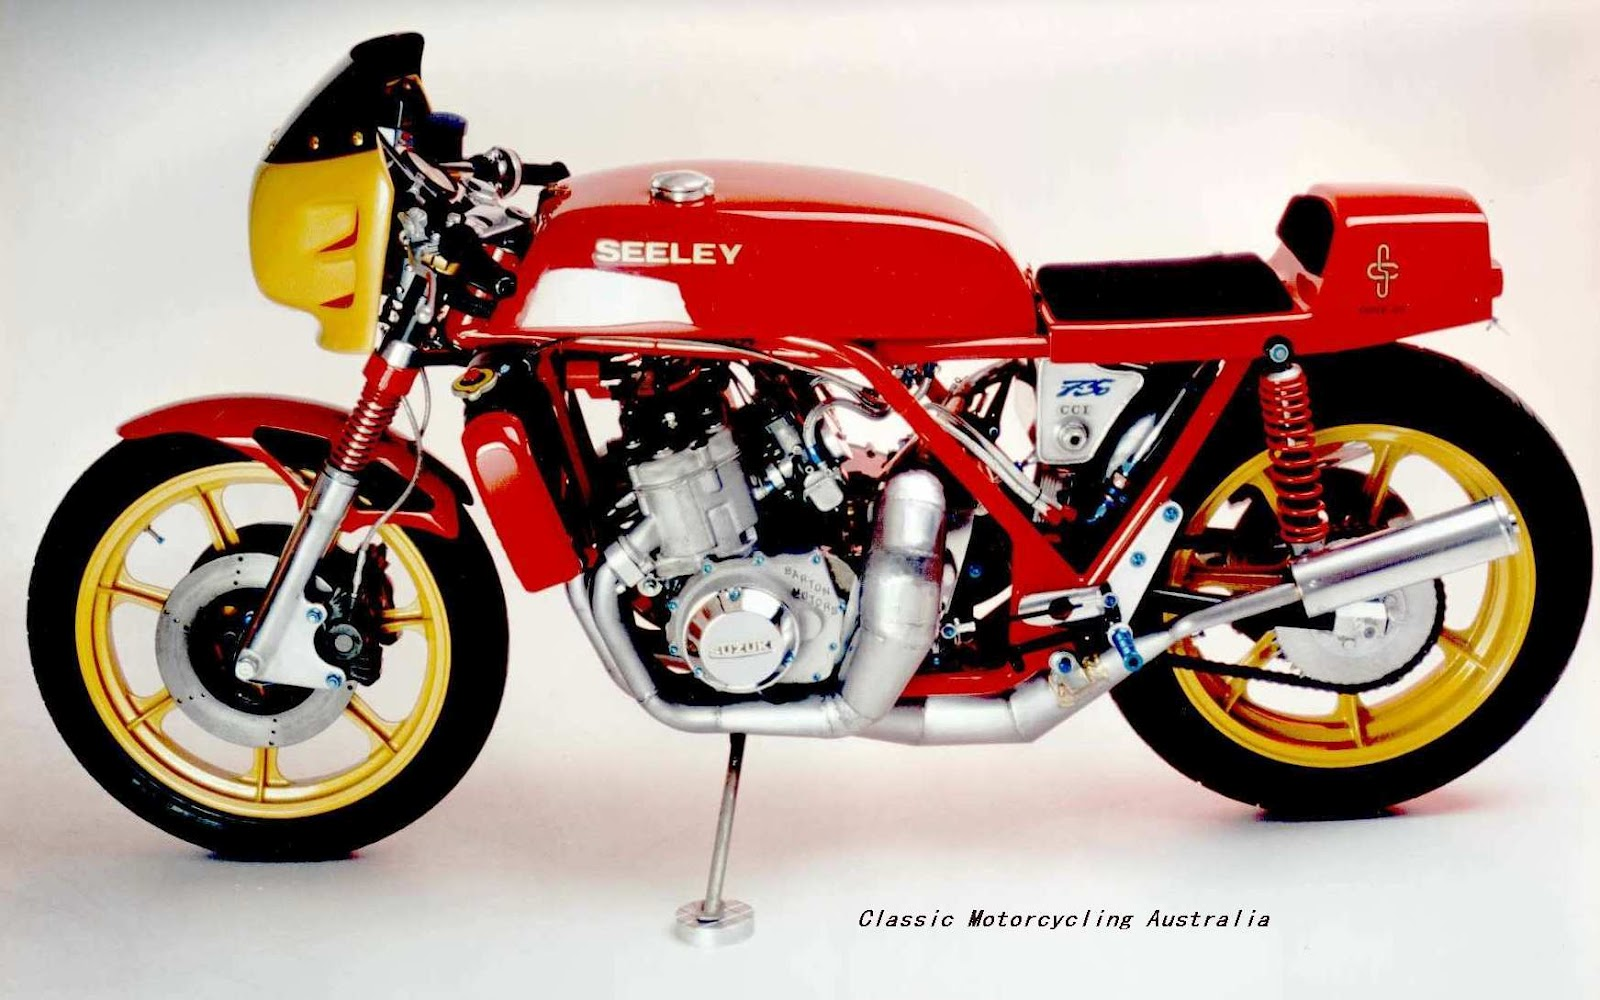 classic motorcycles gp ama fim racers